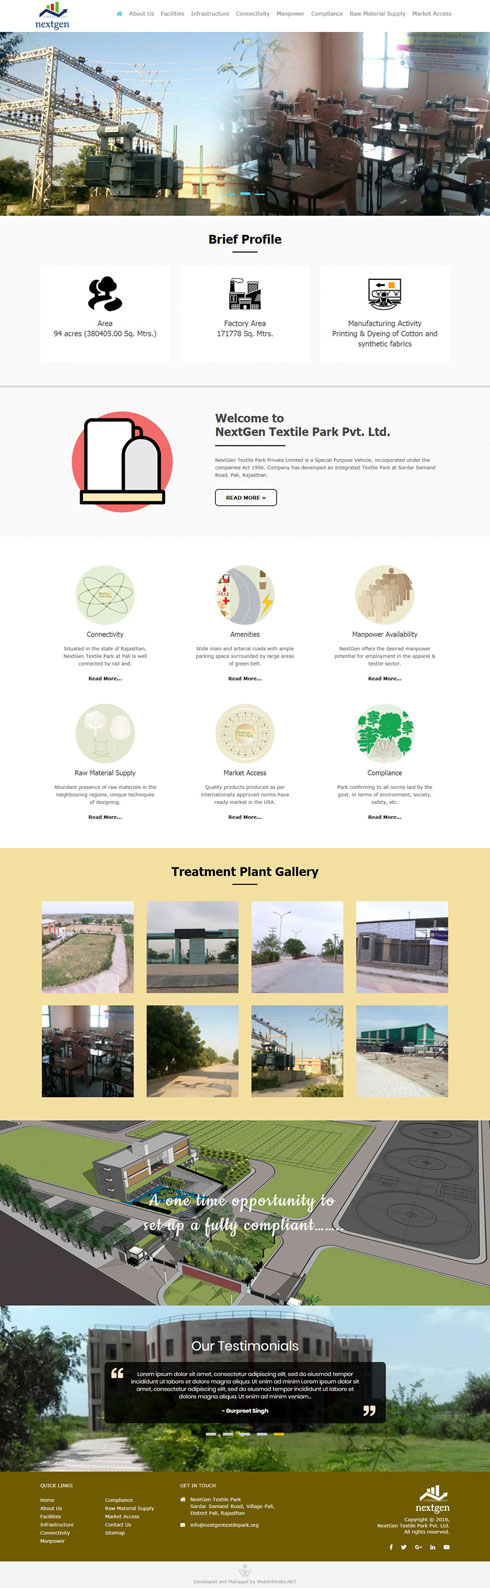 NextGen Textile Park Pvt. Ltd. India Web Design